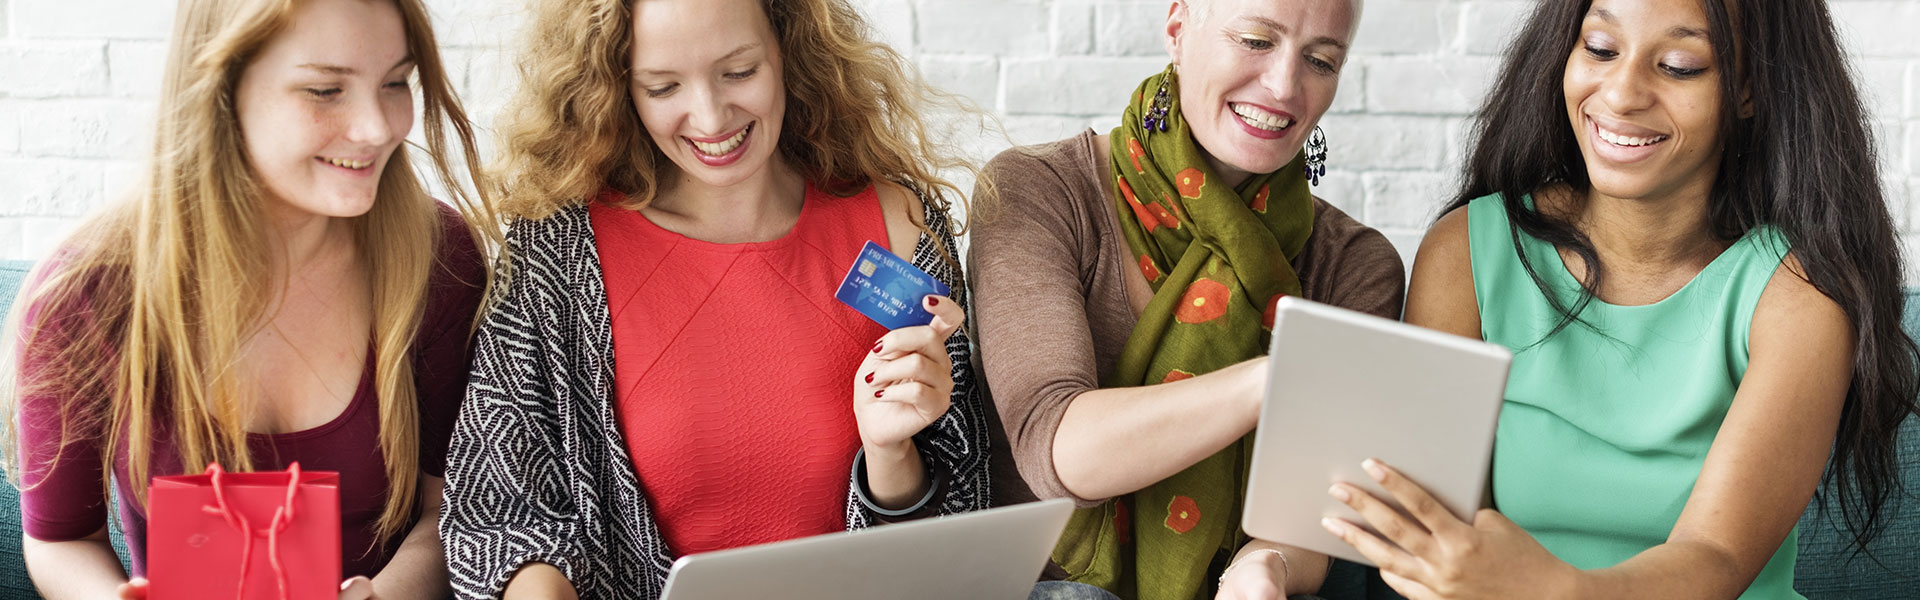 image of women experiencing online personalization